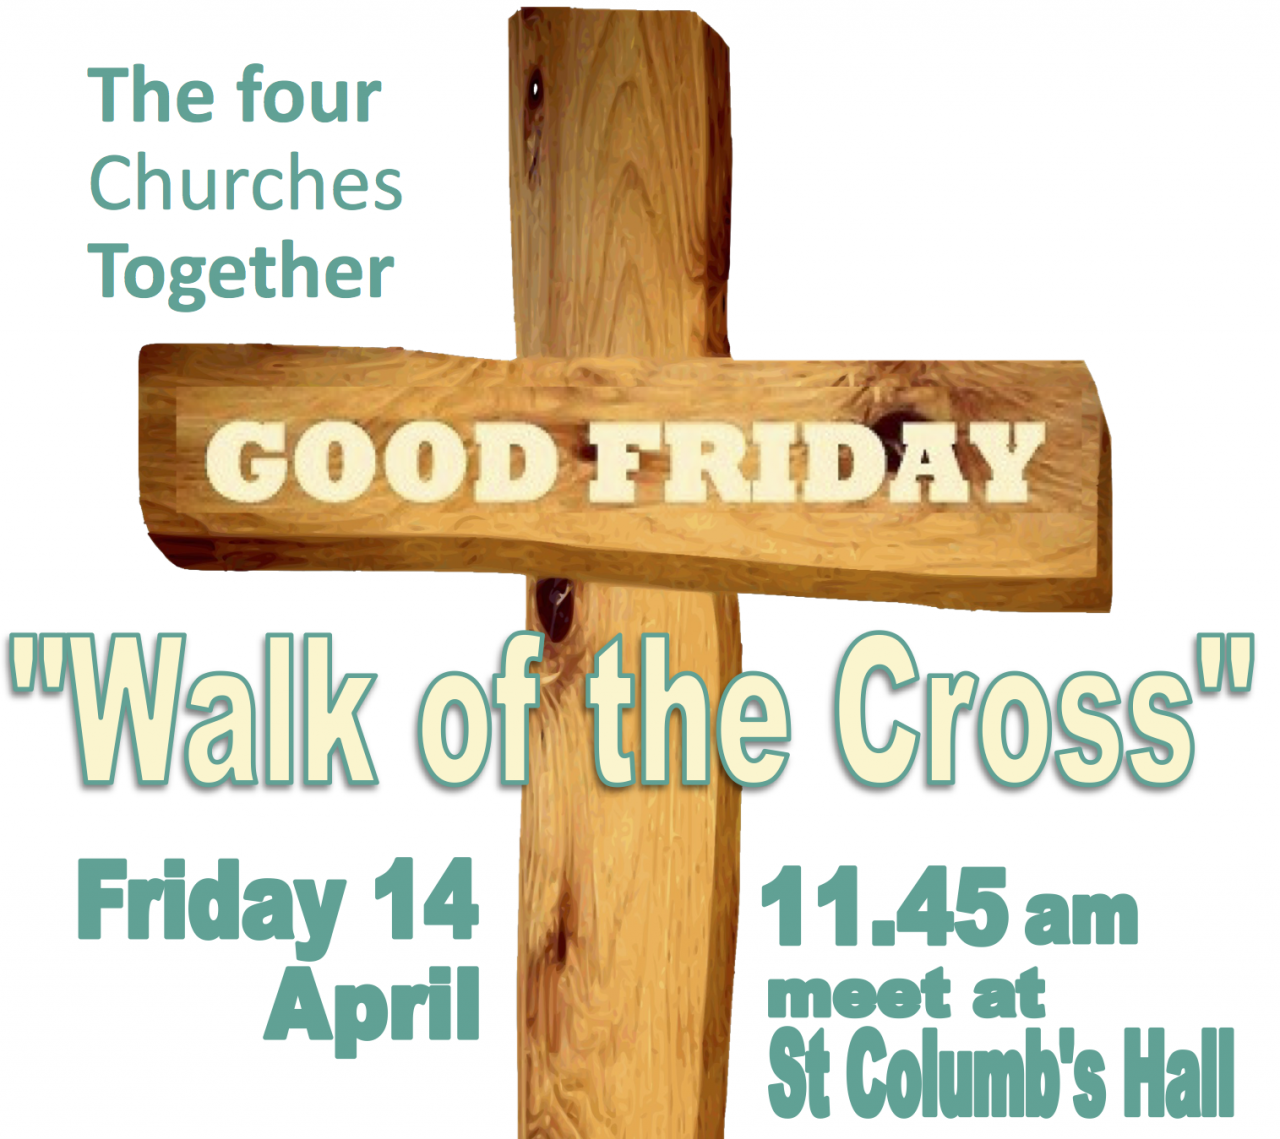 Walk of the Cross - Good Friday - Derry - 4 Churches Together